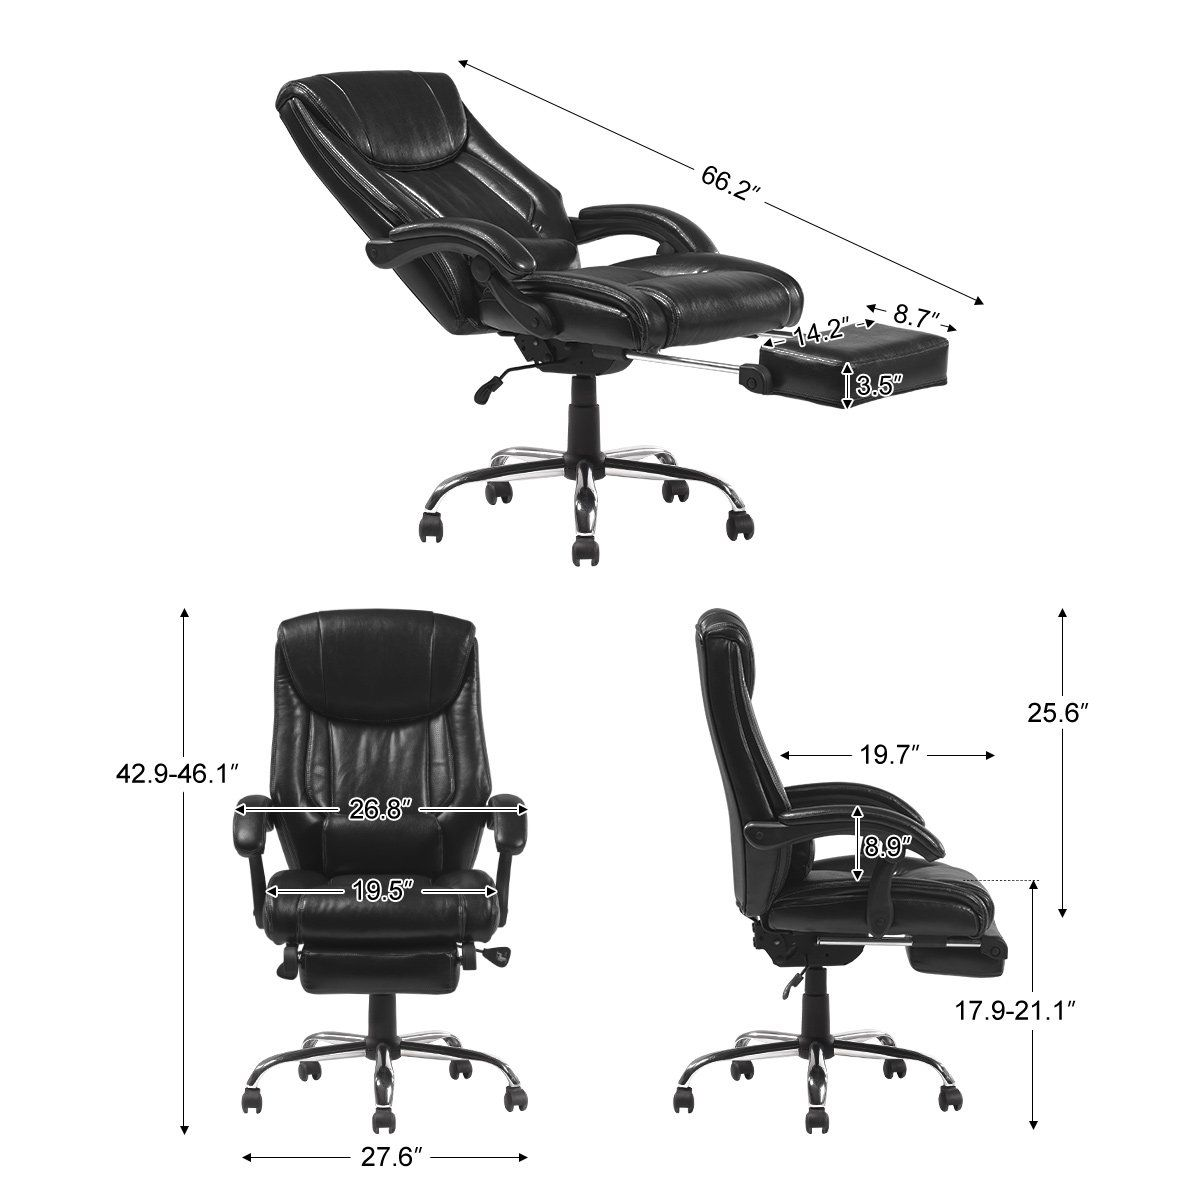 Yamasoro Reclining Office Chair High Back Ergonomic Design Computer Napping Chair Leather With Foo Leather Chair Reclining Office Chair Executive Office Chairs